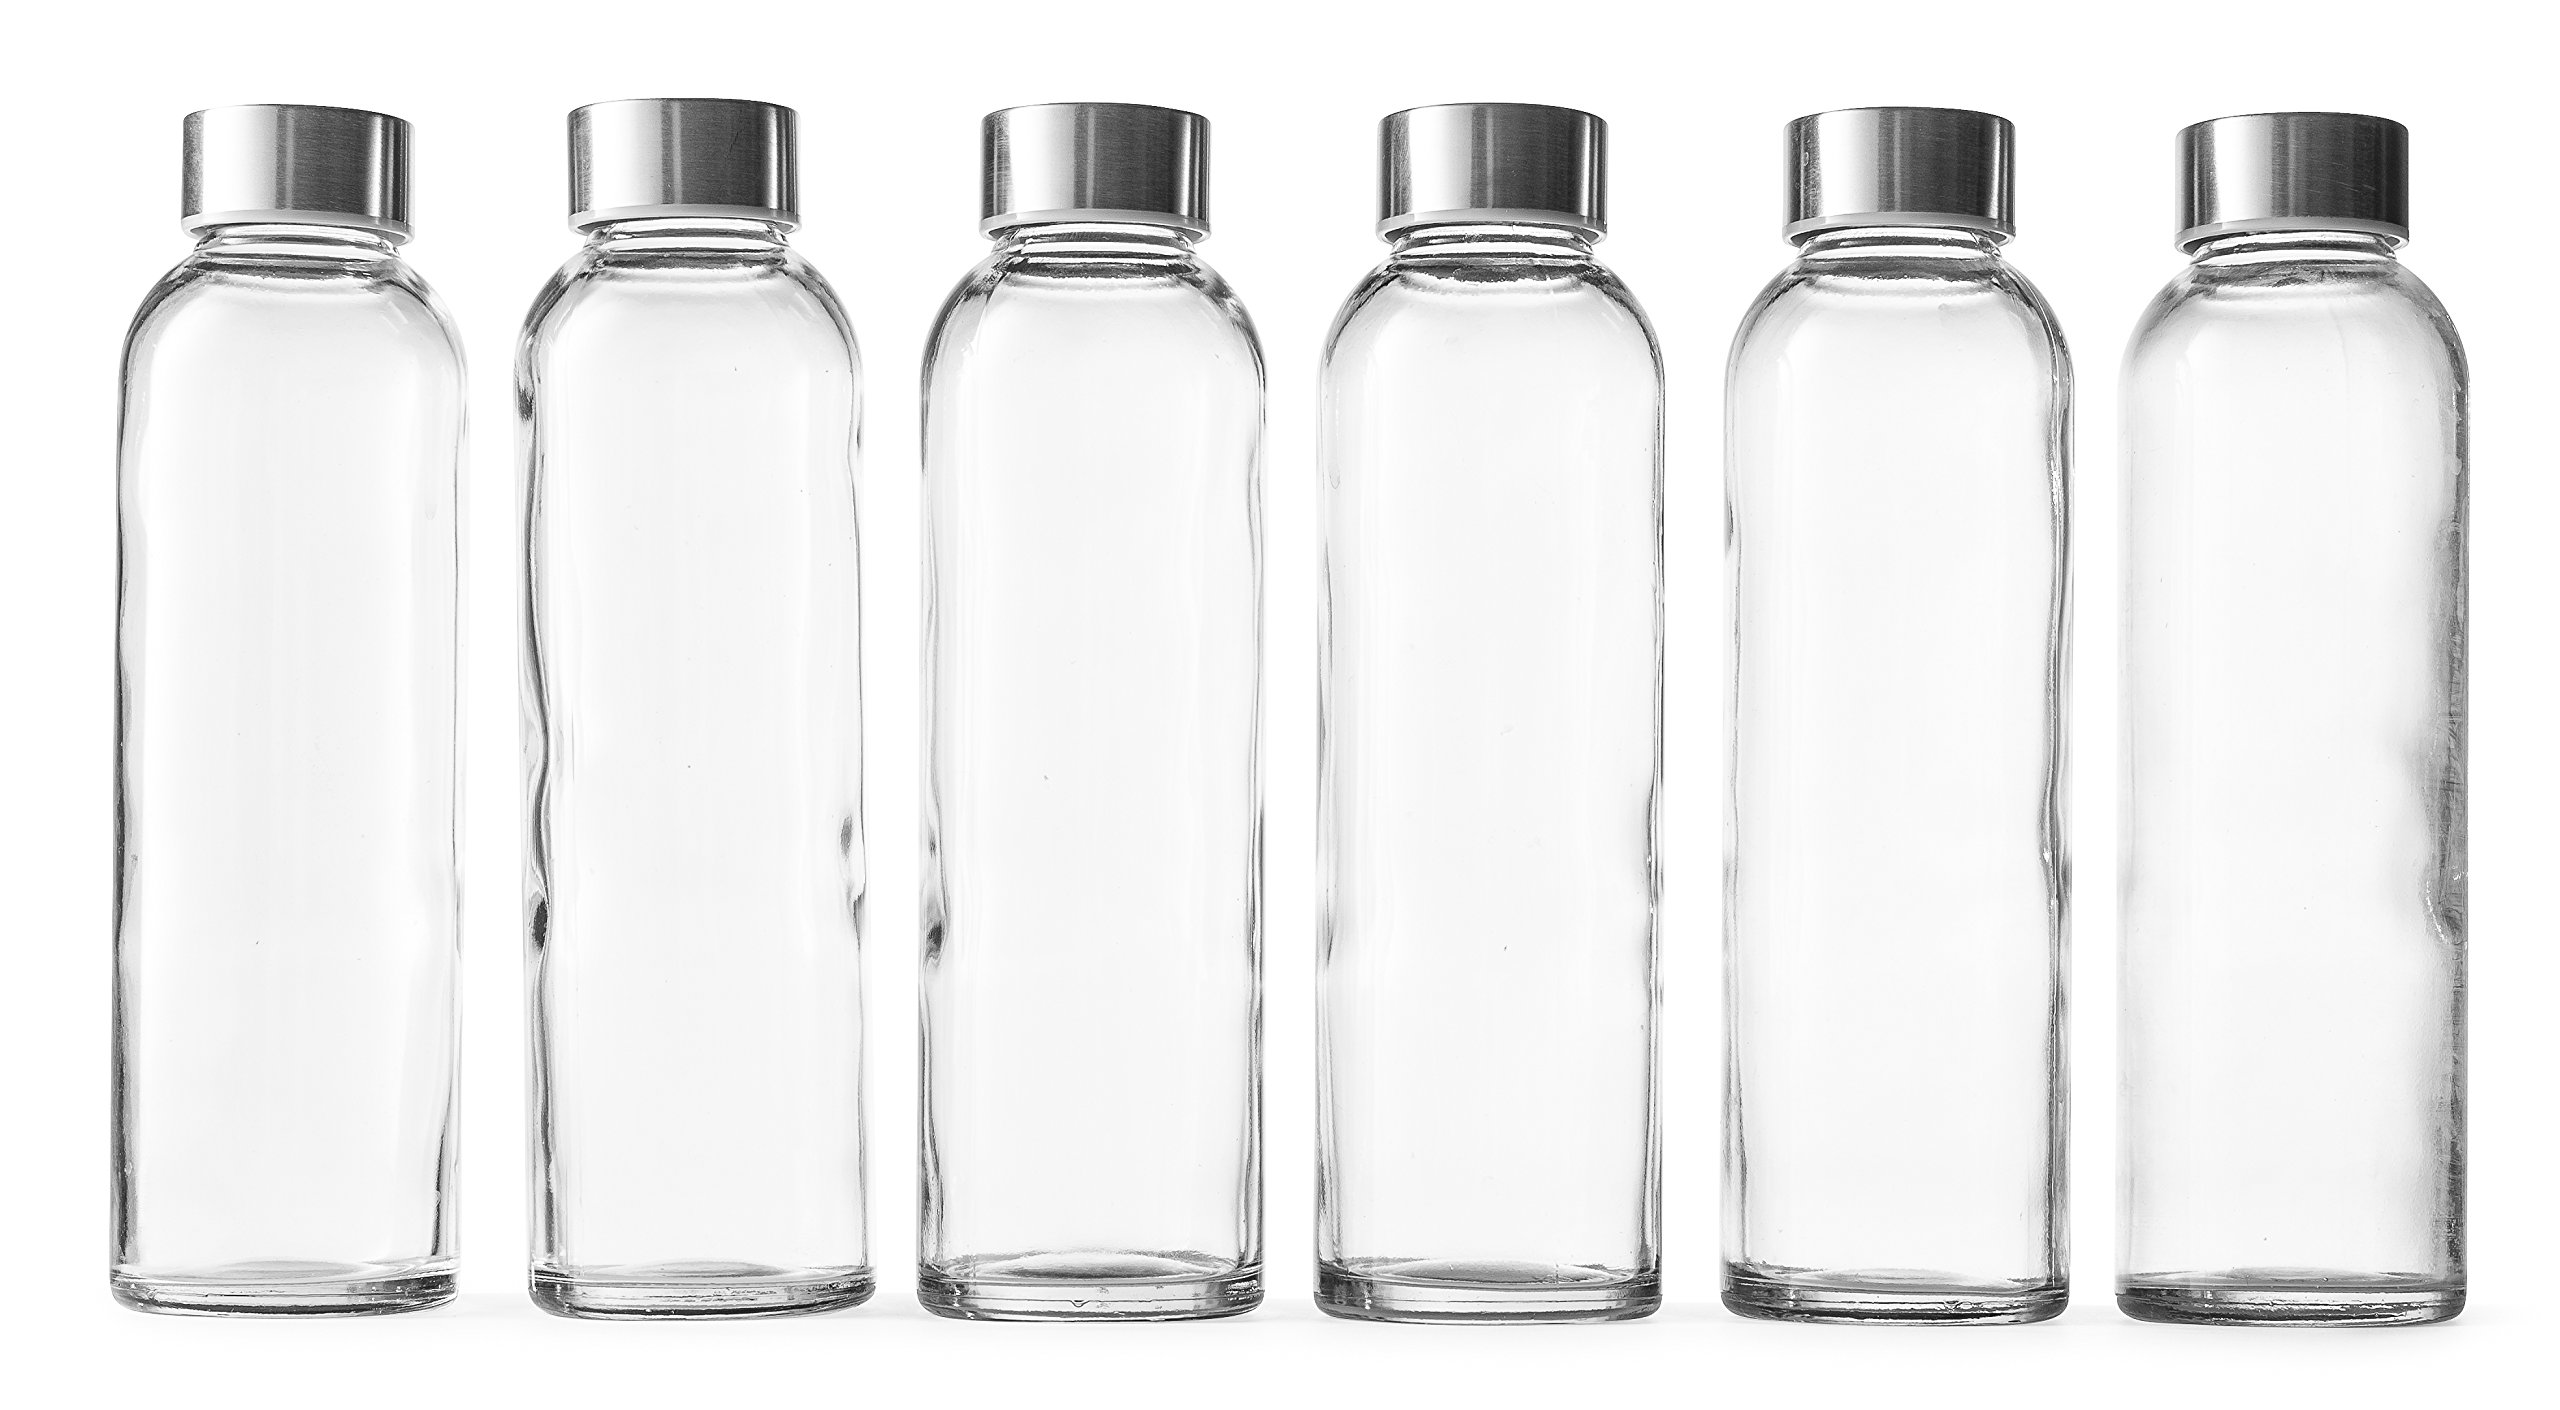 Epica 18-Oz. Glass Beverage Bottles, Set of 6 by Epica